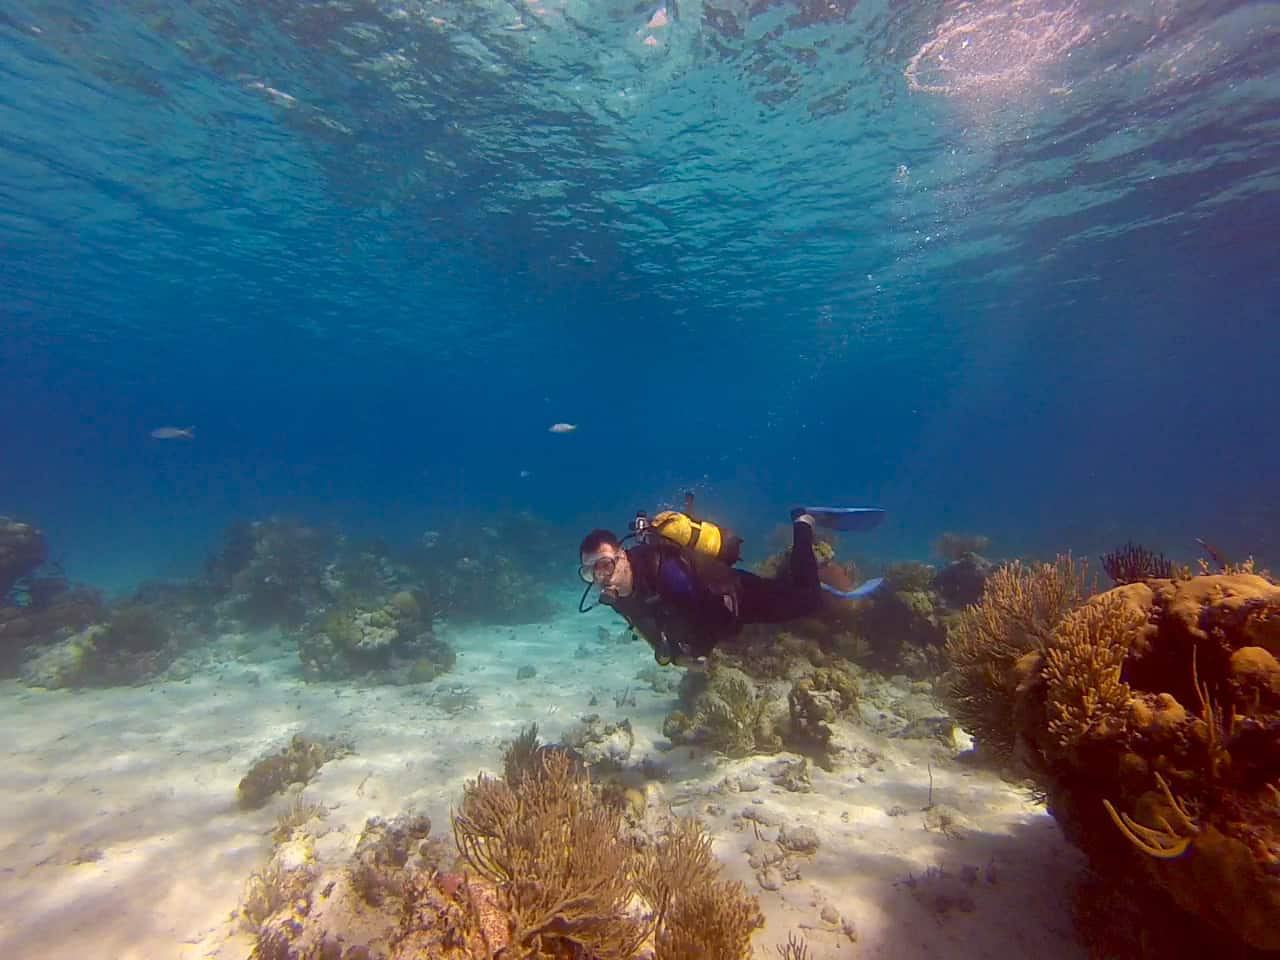 A diver enjoys crystal clear water and soft corals in the Bay of Pigs in Cuba.